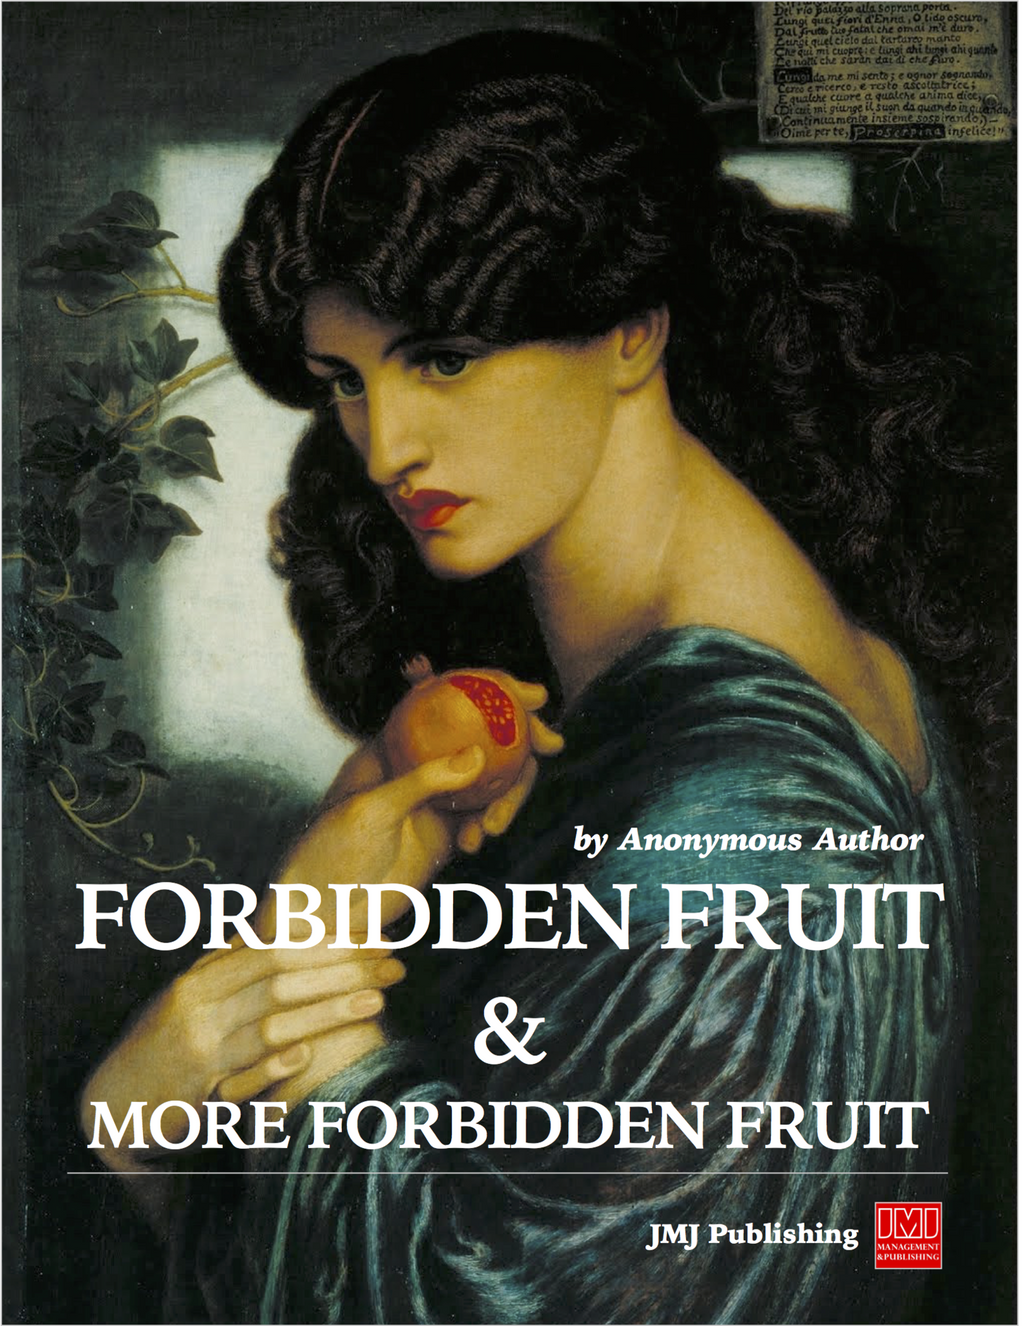 Forbidden Fruit & More Forbidden Fruit